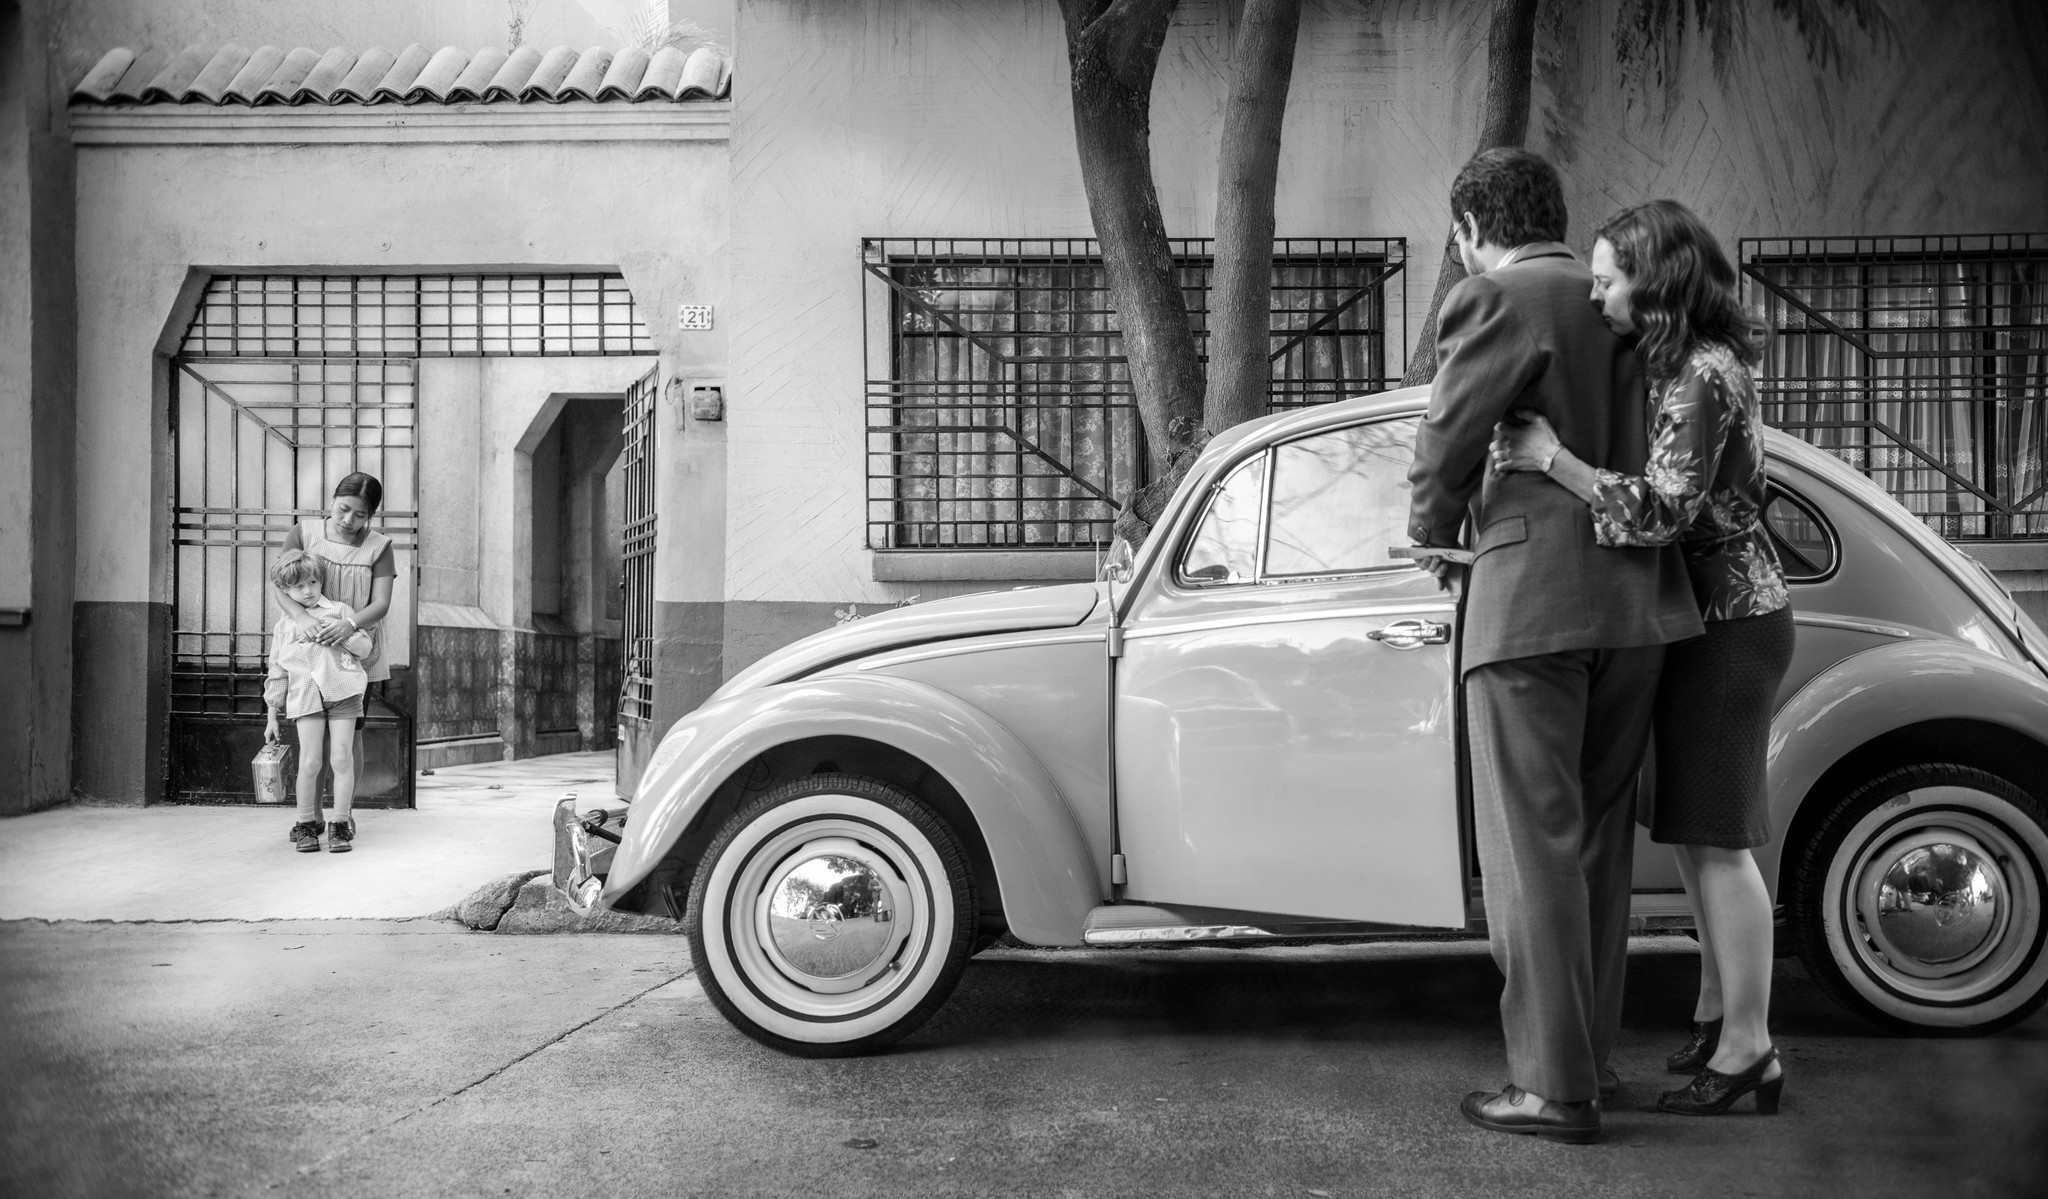 Black-and-white films aren't relics: Here's why two Oscar nominees went monochrome